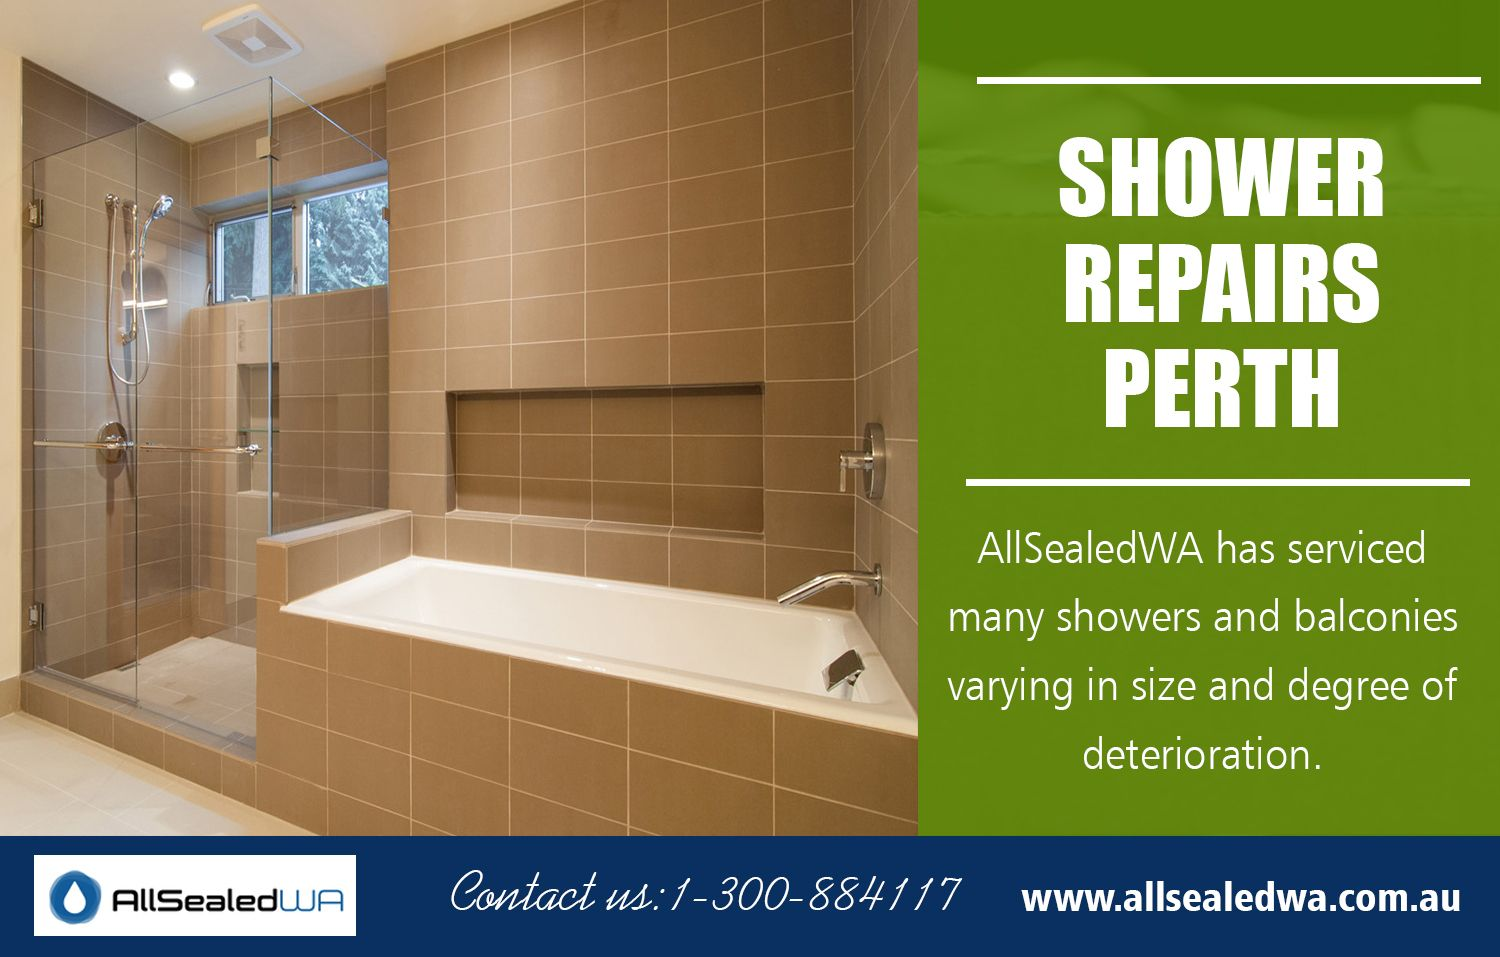 Bathroom Repairs In Perth For Fast And Reliable Service From A